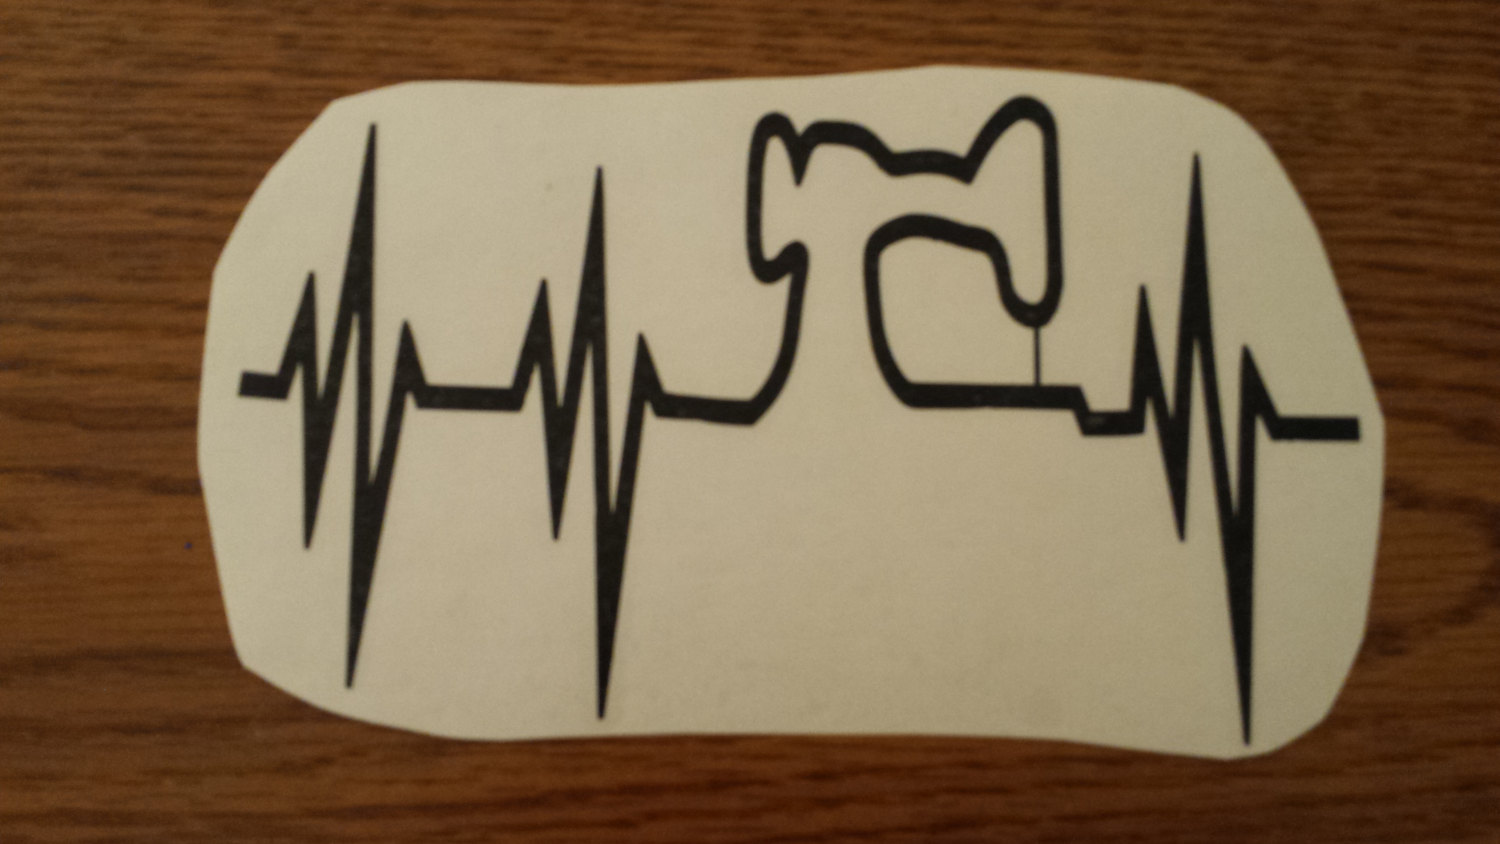 Sewing Embroidery Machine EKG Hearbeat Vinyl Decal 8x5 from Rowanmayfairs  Designs